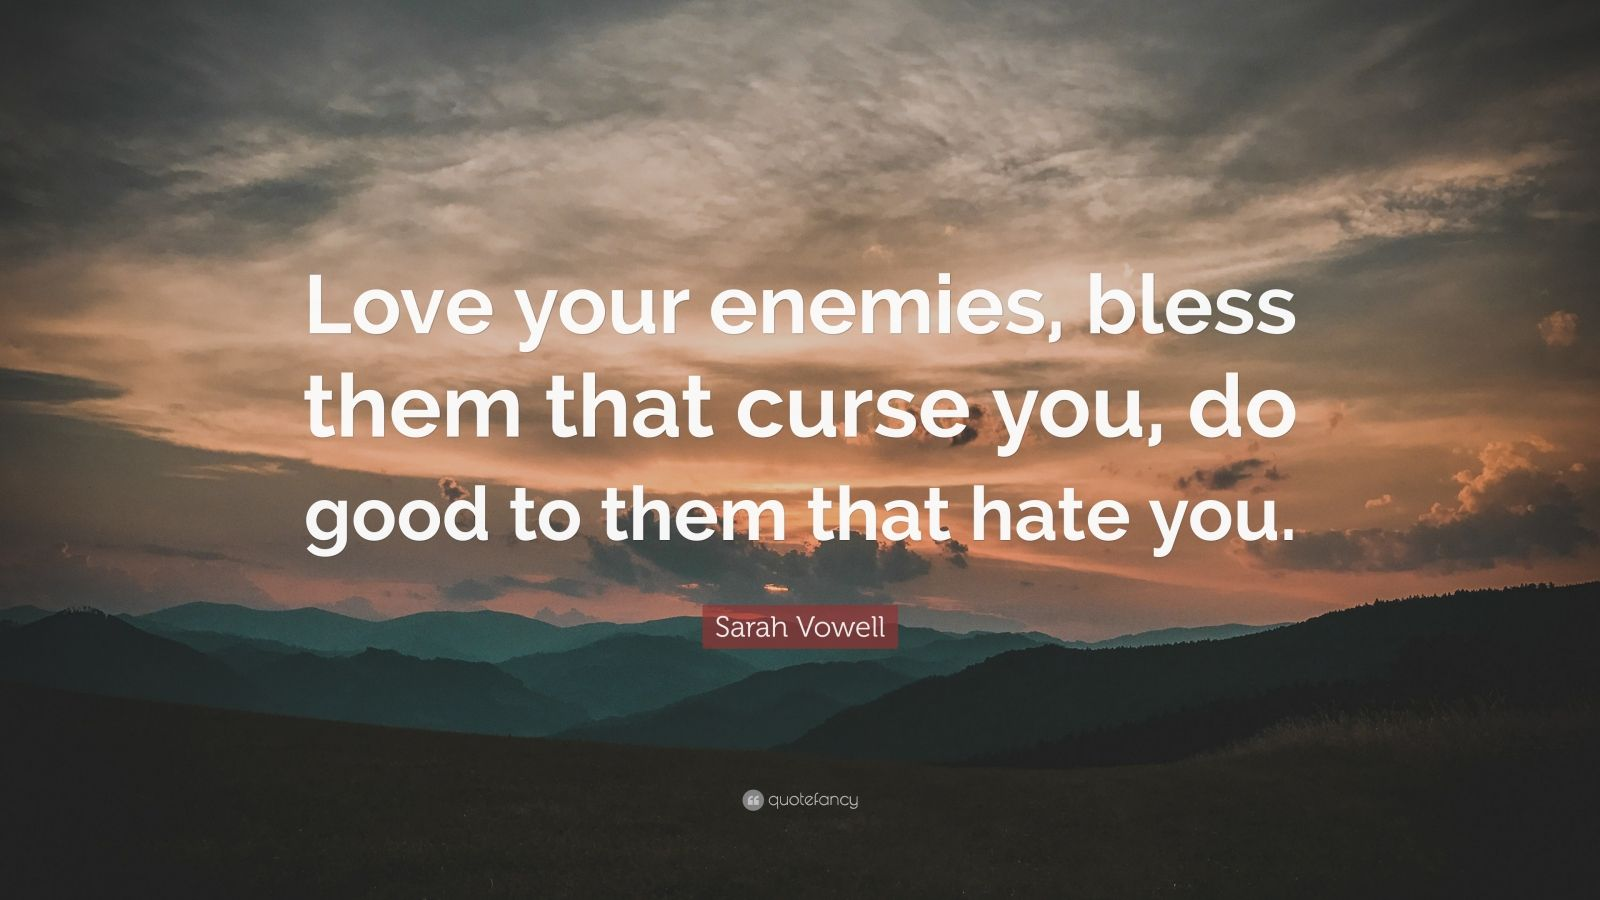 Sarah Vowell Quote Love Your Enemies Bless Them That